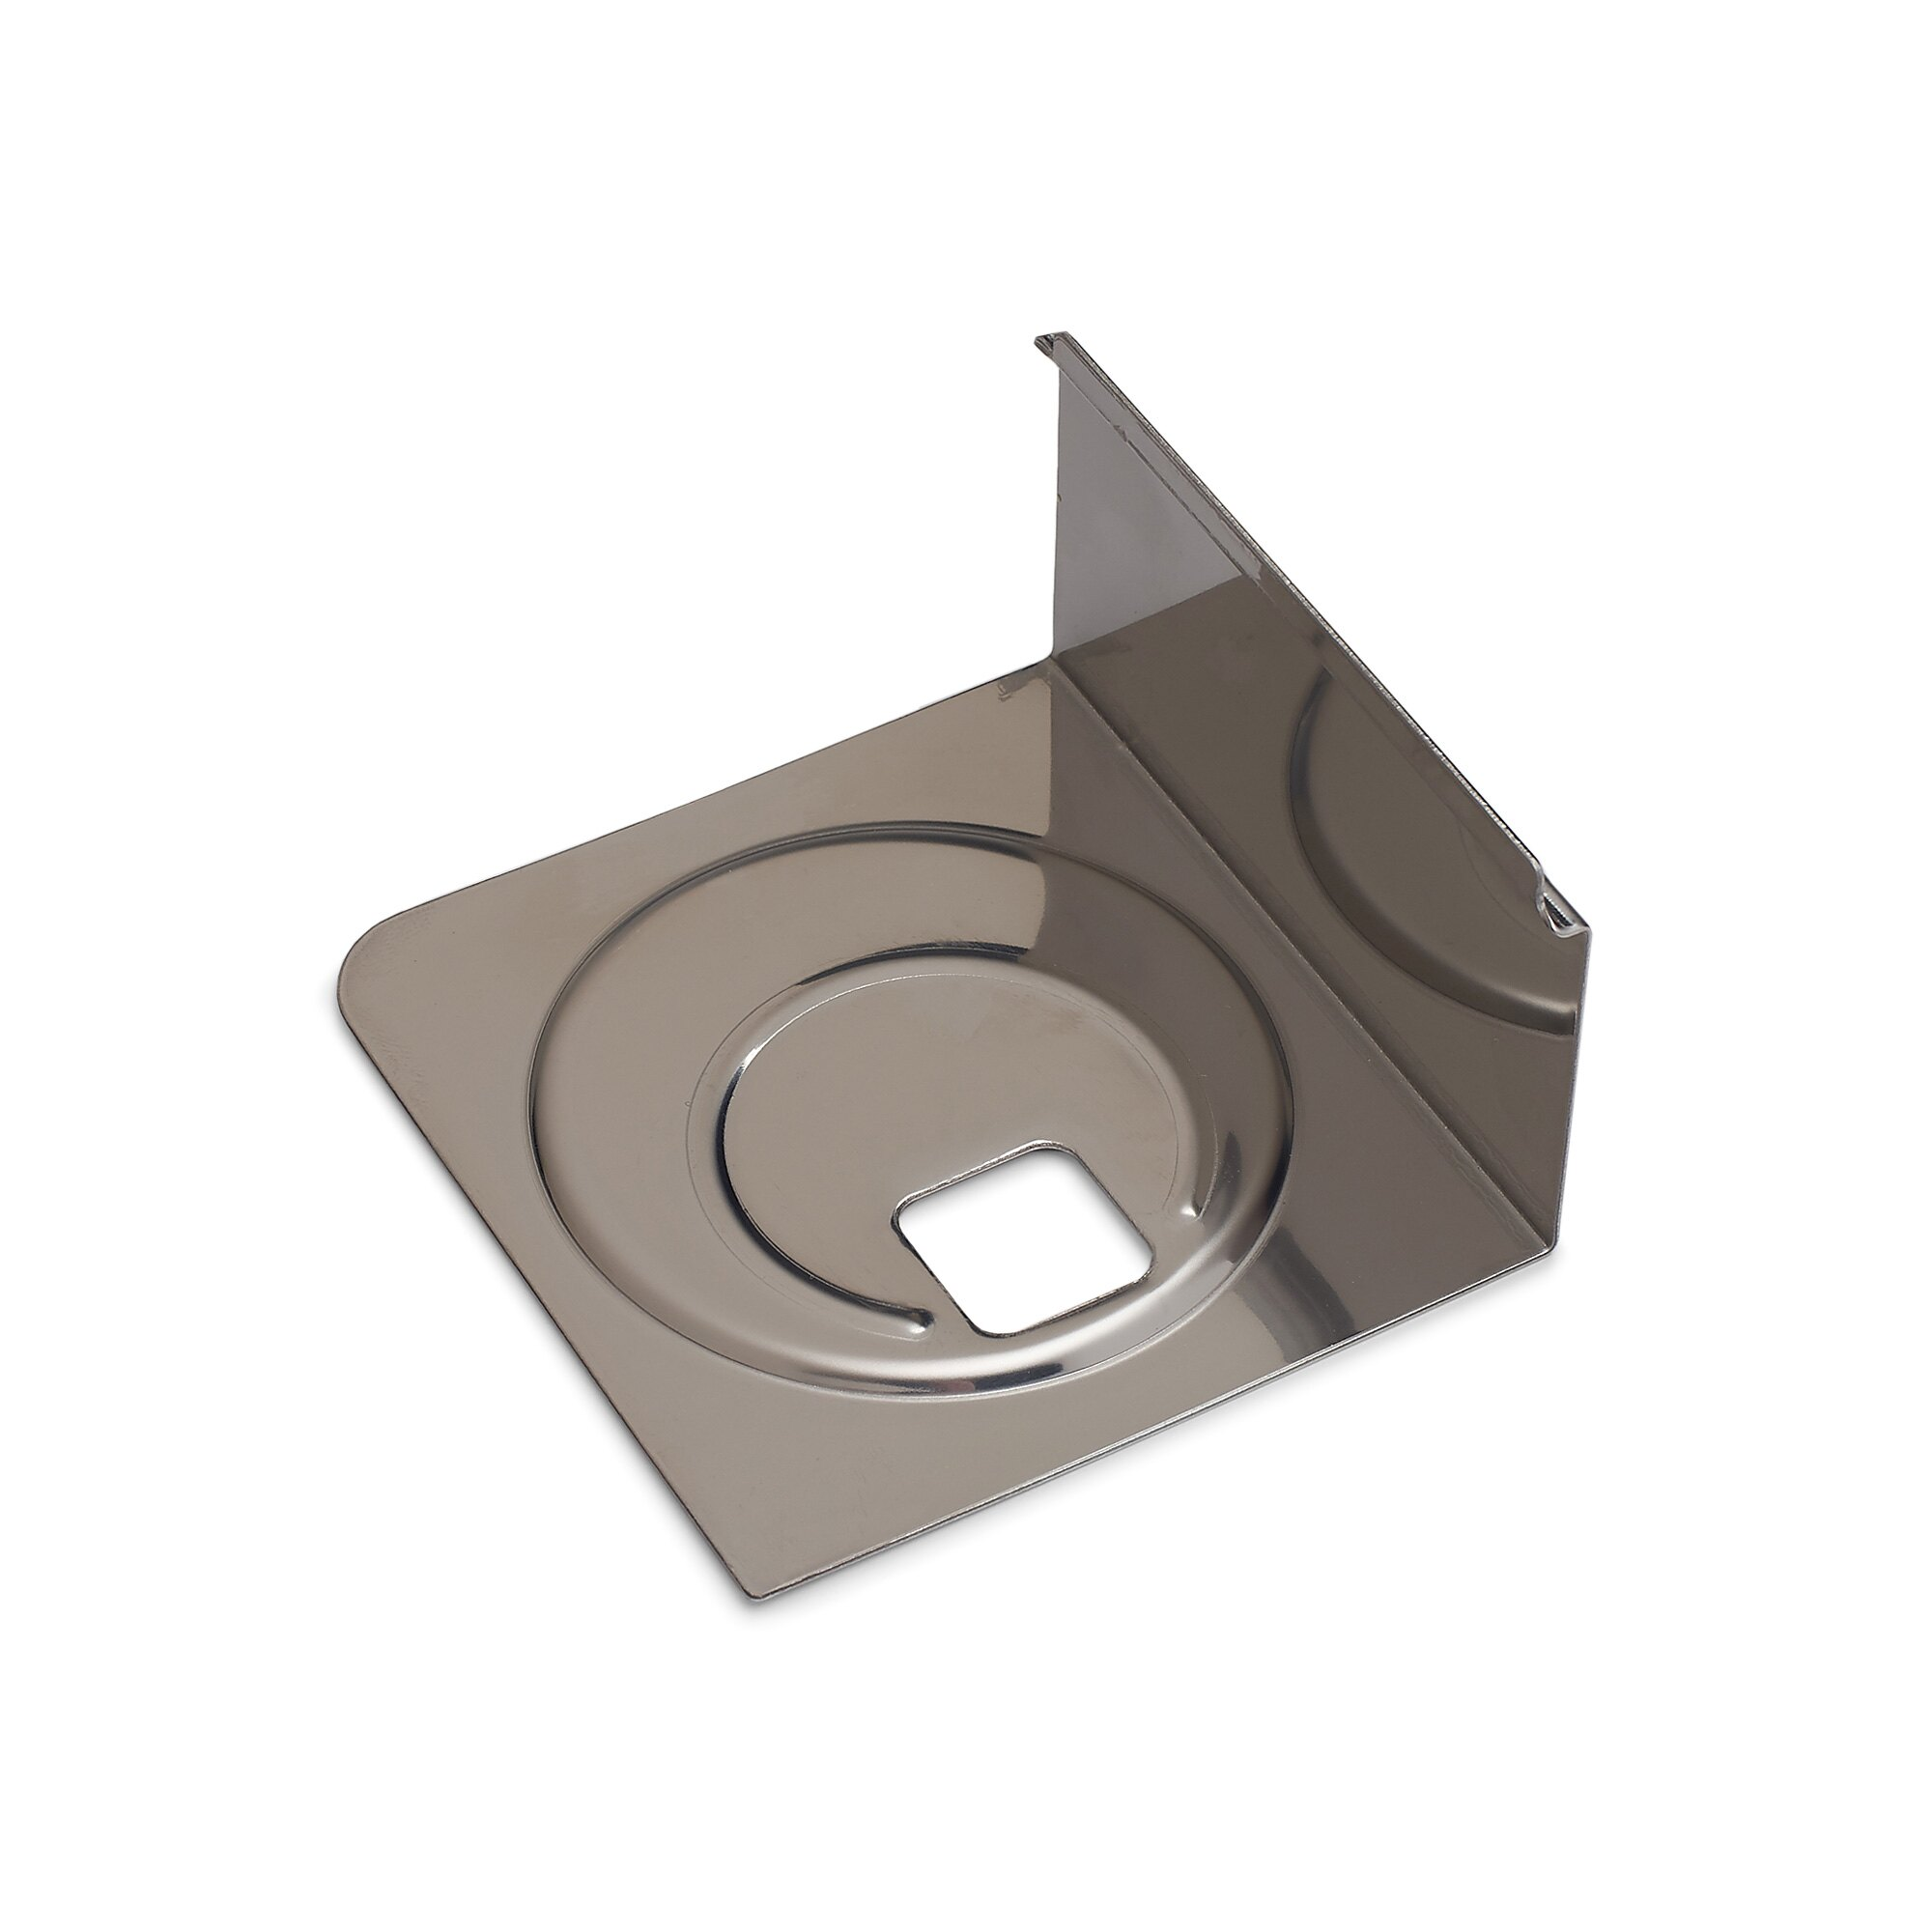 Replacement Y1 Stainless Steel Cup Plates